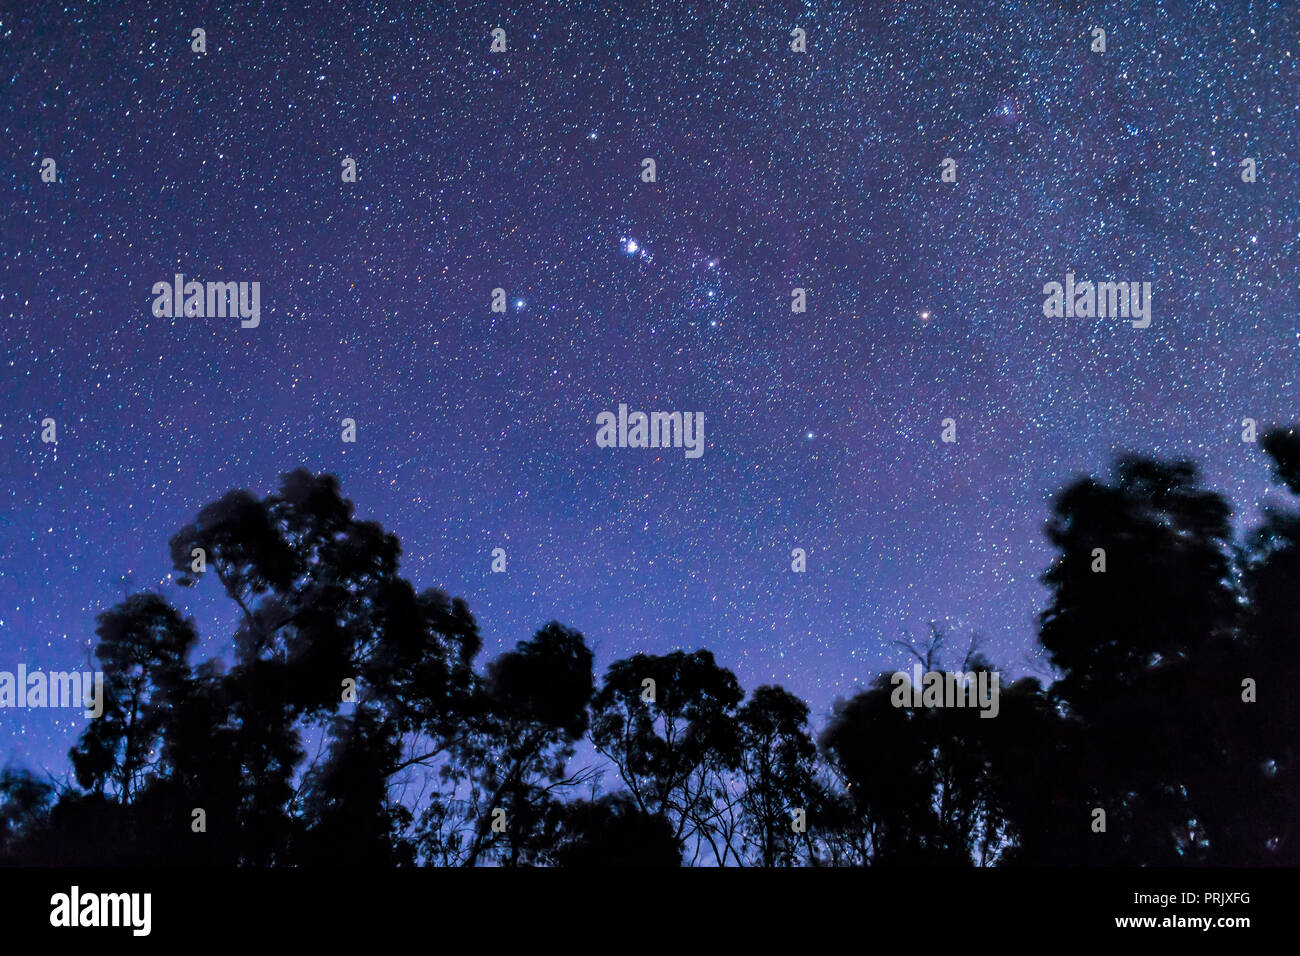 """Orion setting in deep twilight sky with stars in abundance but the sky still deep blue, from Australia with Orion """"upside down."""" The Saucepan asterism - Stock Image"""